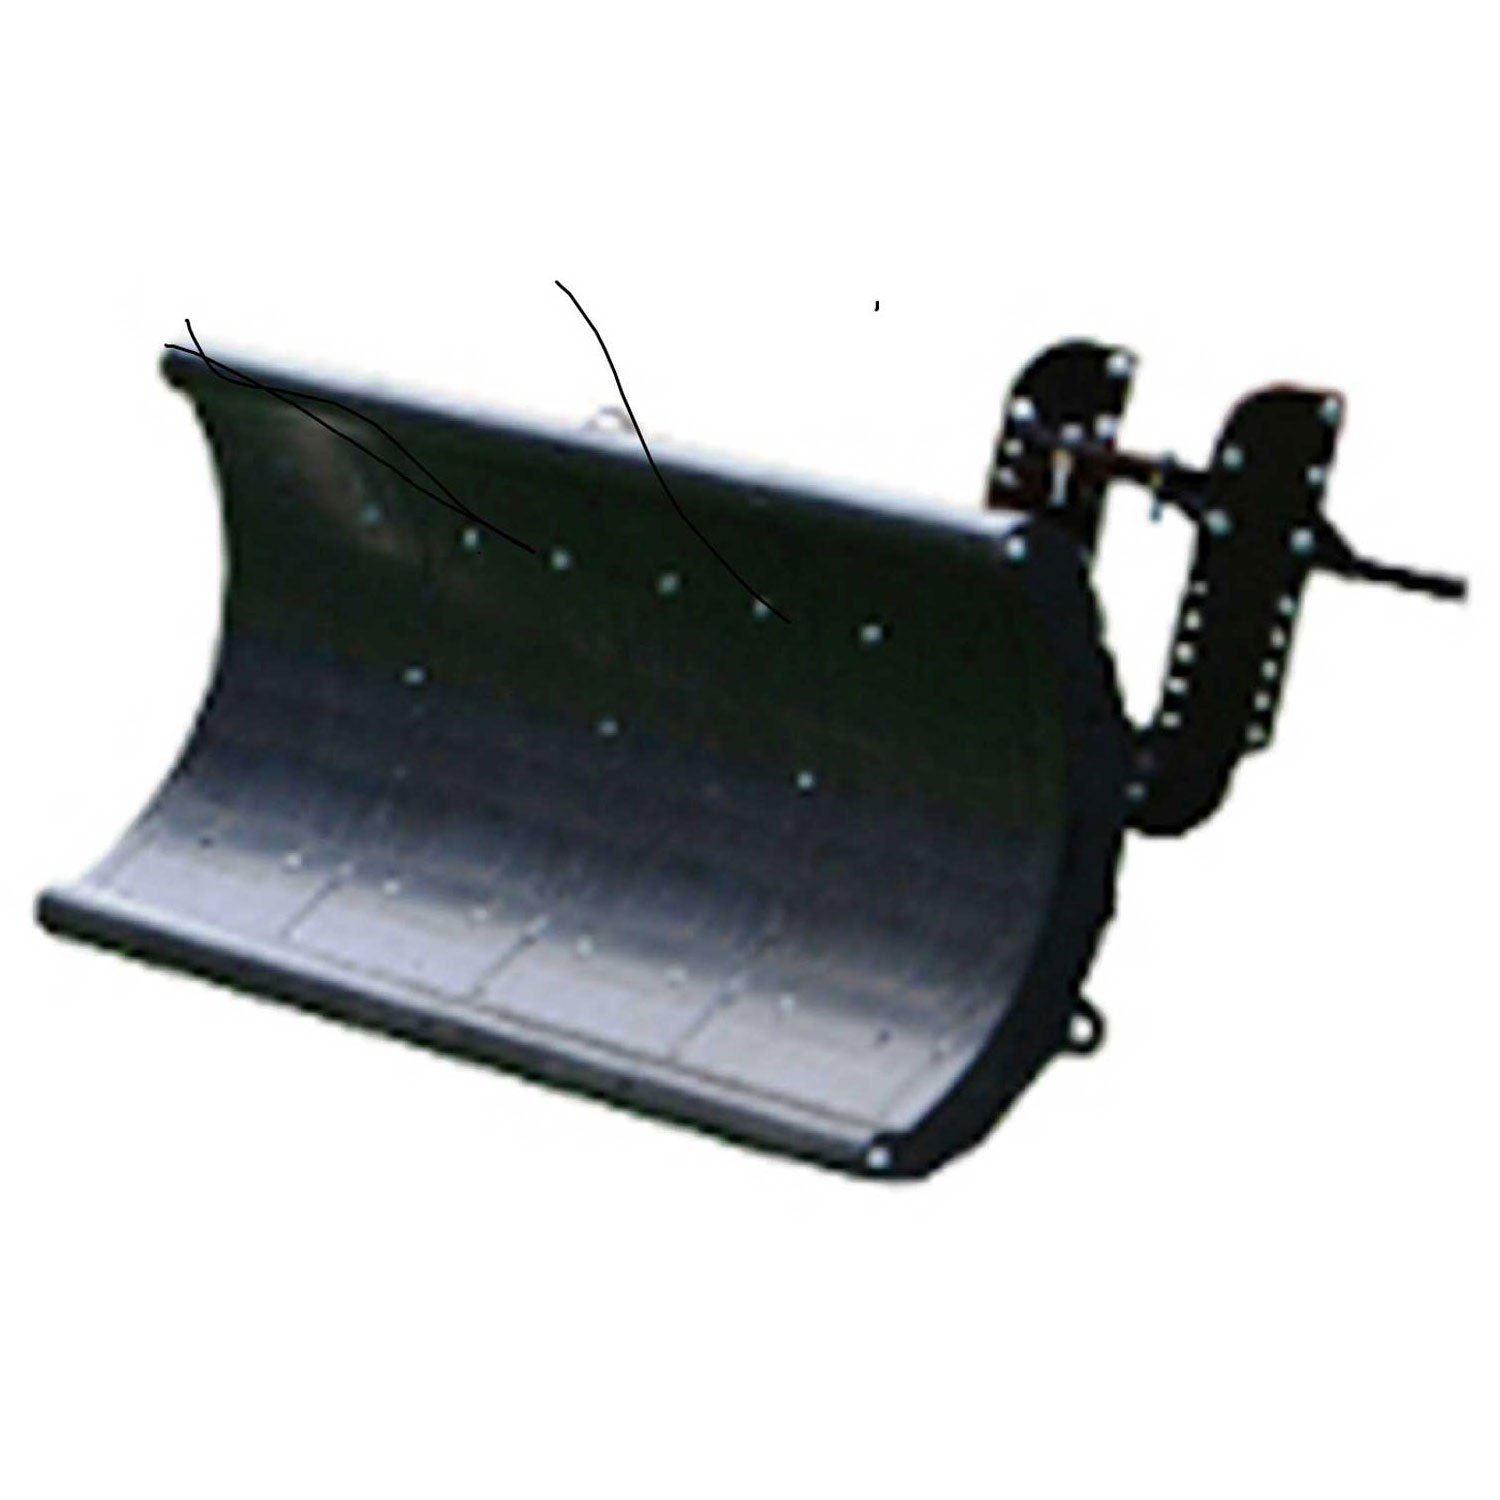 Nordic Auto Plow NAP-GC3 Lightweight Rounded Edge 49'' Snow Plow: Club Car Golf Carts by Nordic Auto Plow LLC